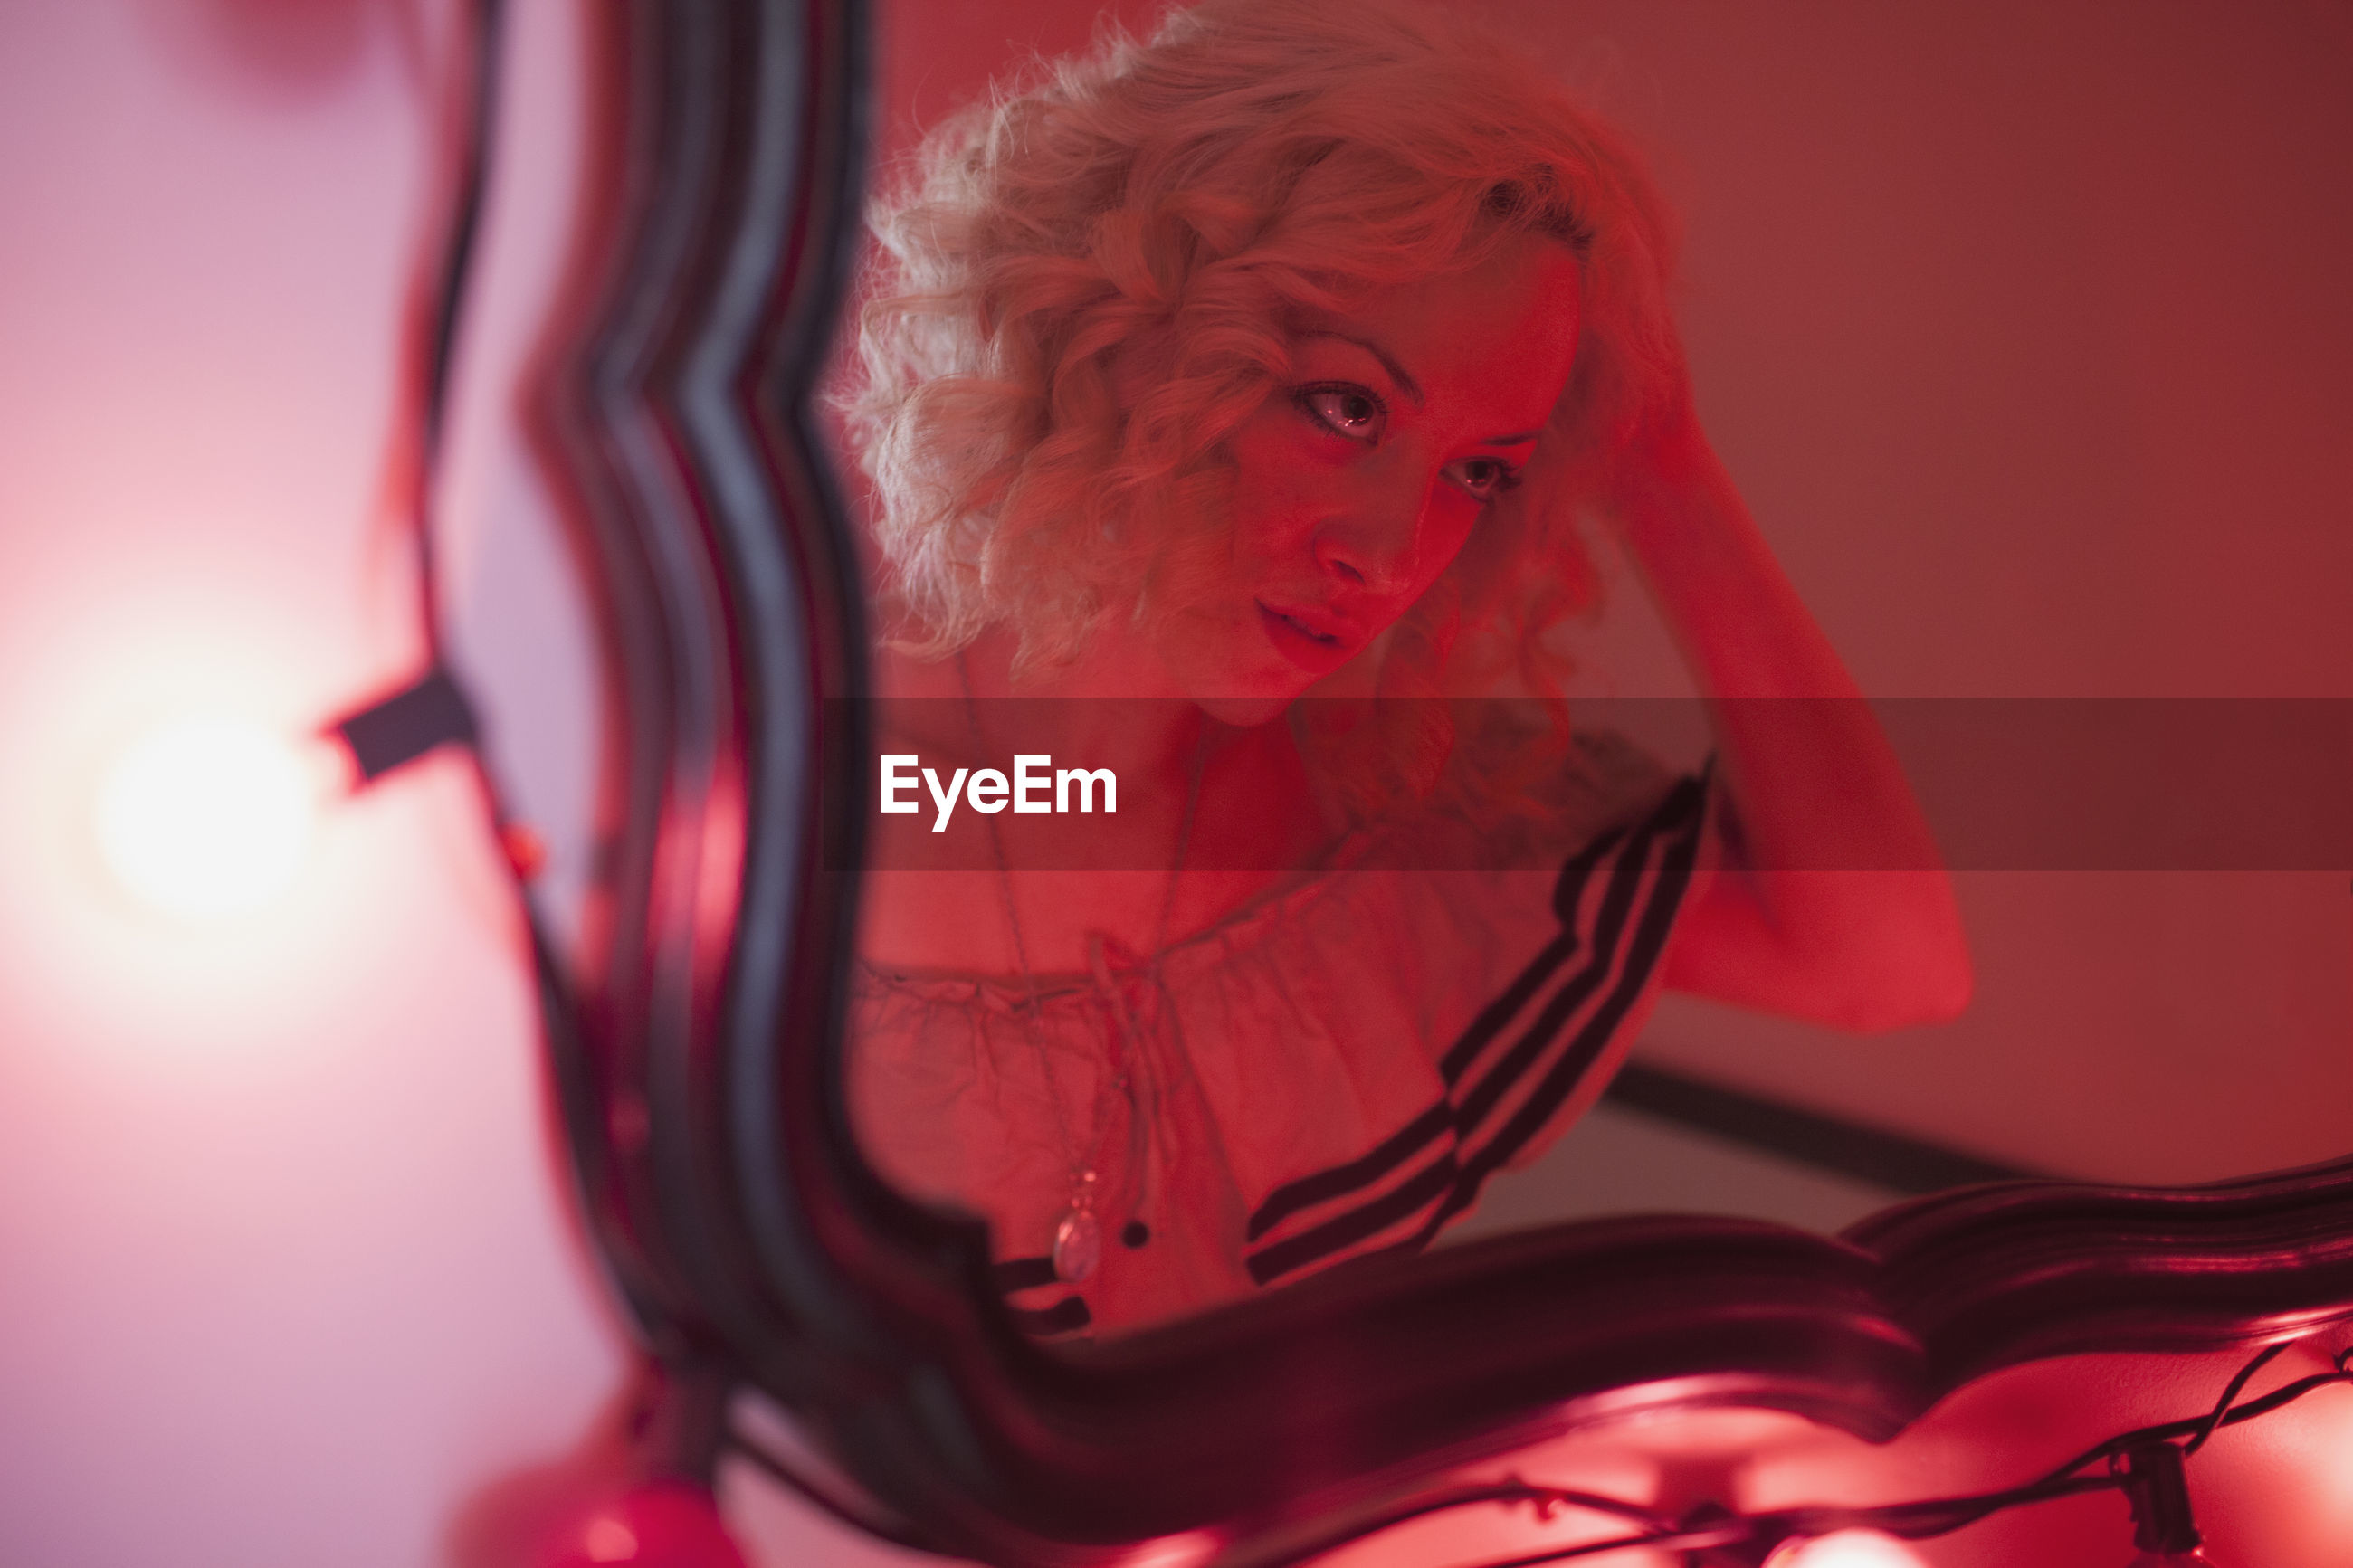 CLOSE-UP PORTRAIT OF WOMAN WITH RED LIGHT PAINTING